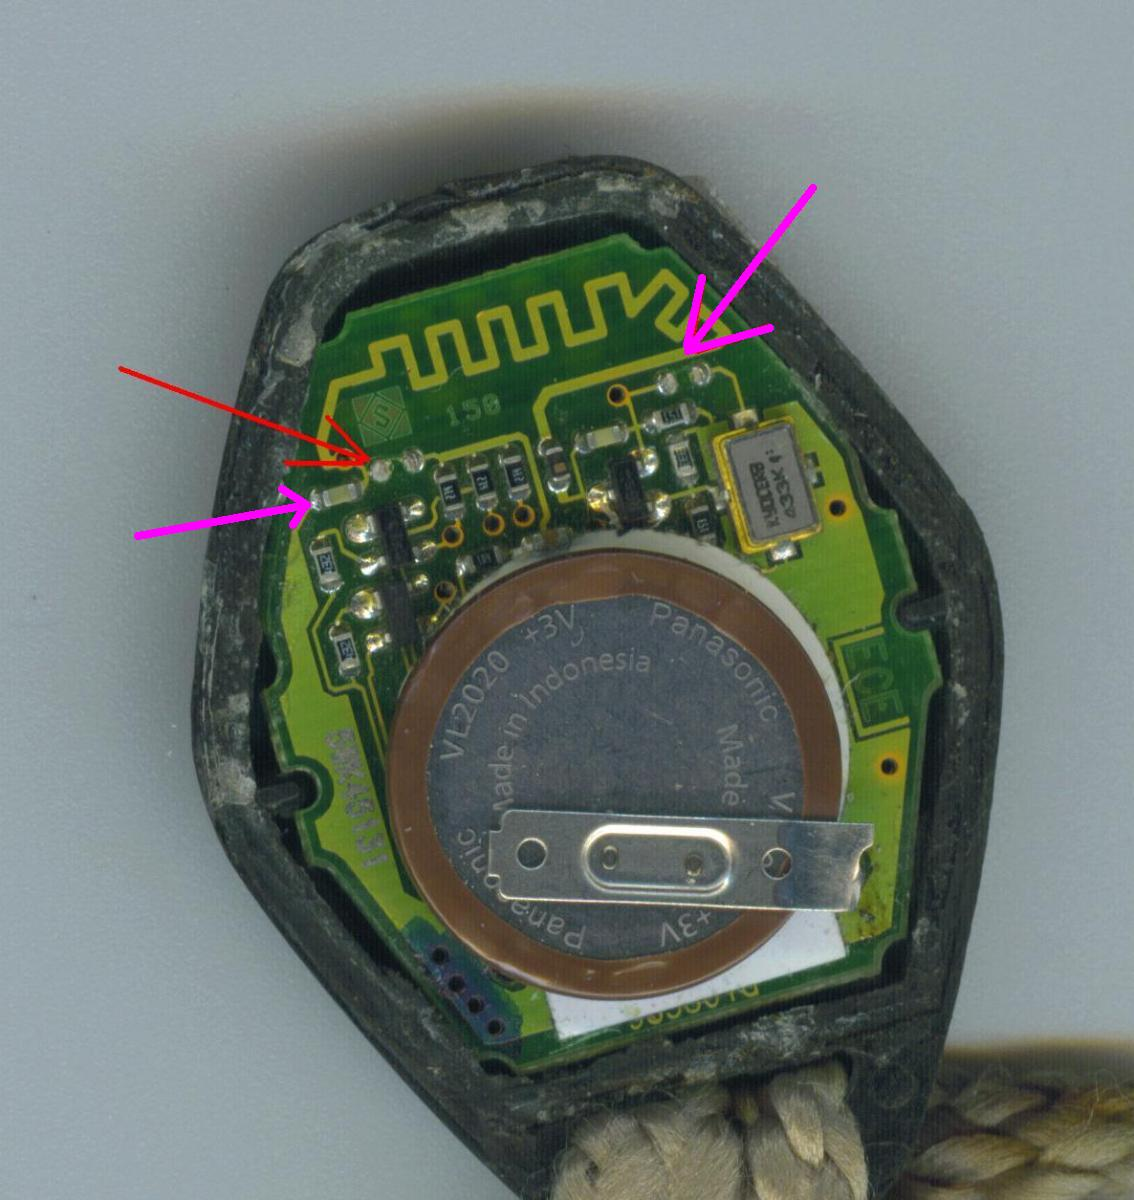 I also found the schematic of the key at:  http://autoelectrica-service.ru/imag...ng-diagram.jpg